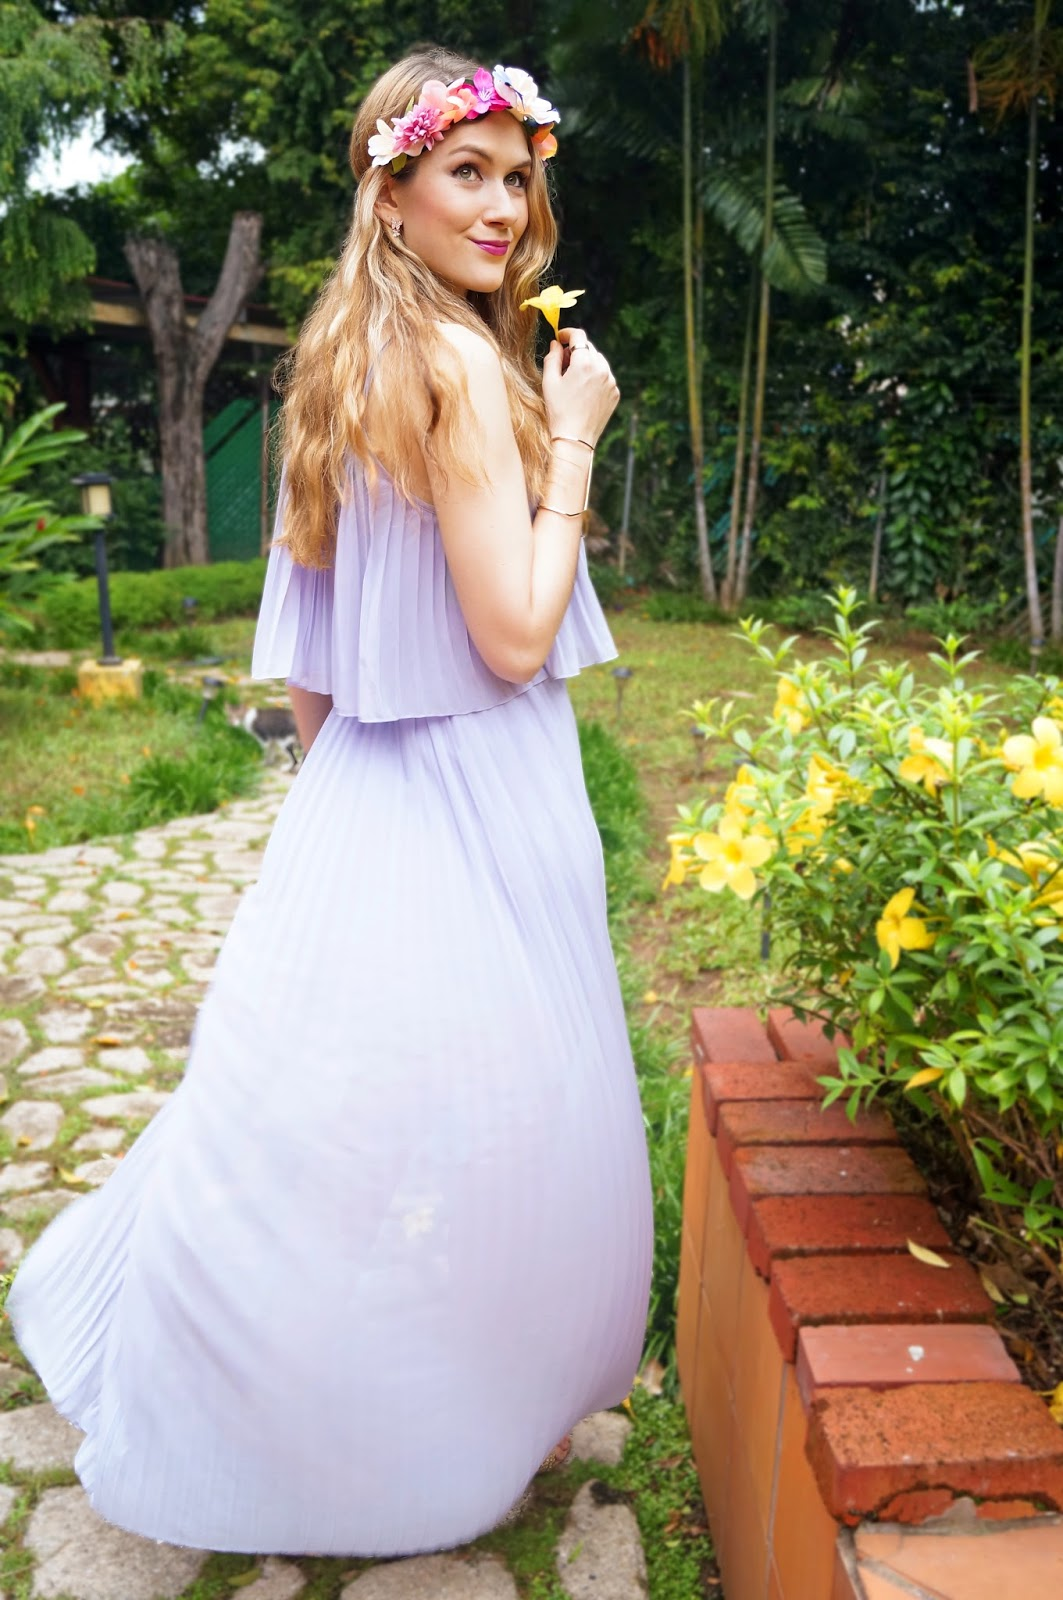 The Joy Of Fashion Outfit Lavender Dress And Floral Crown